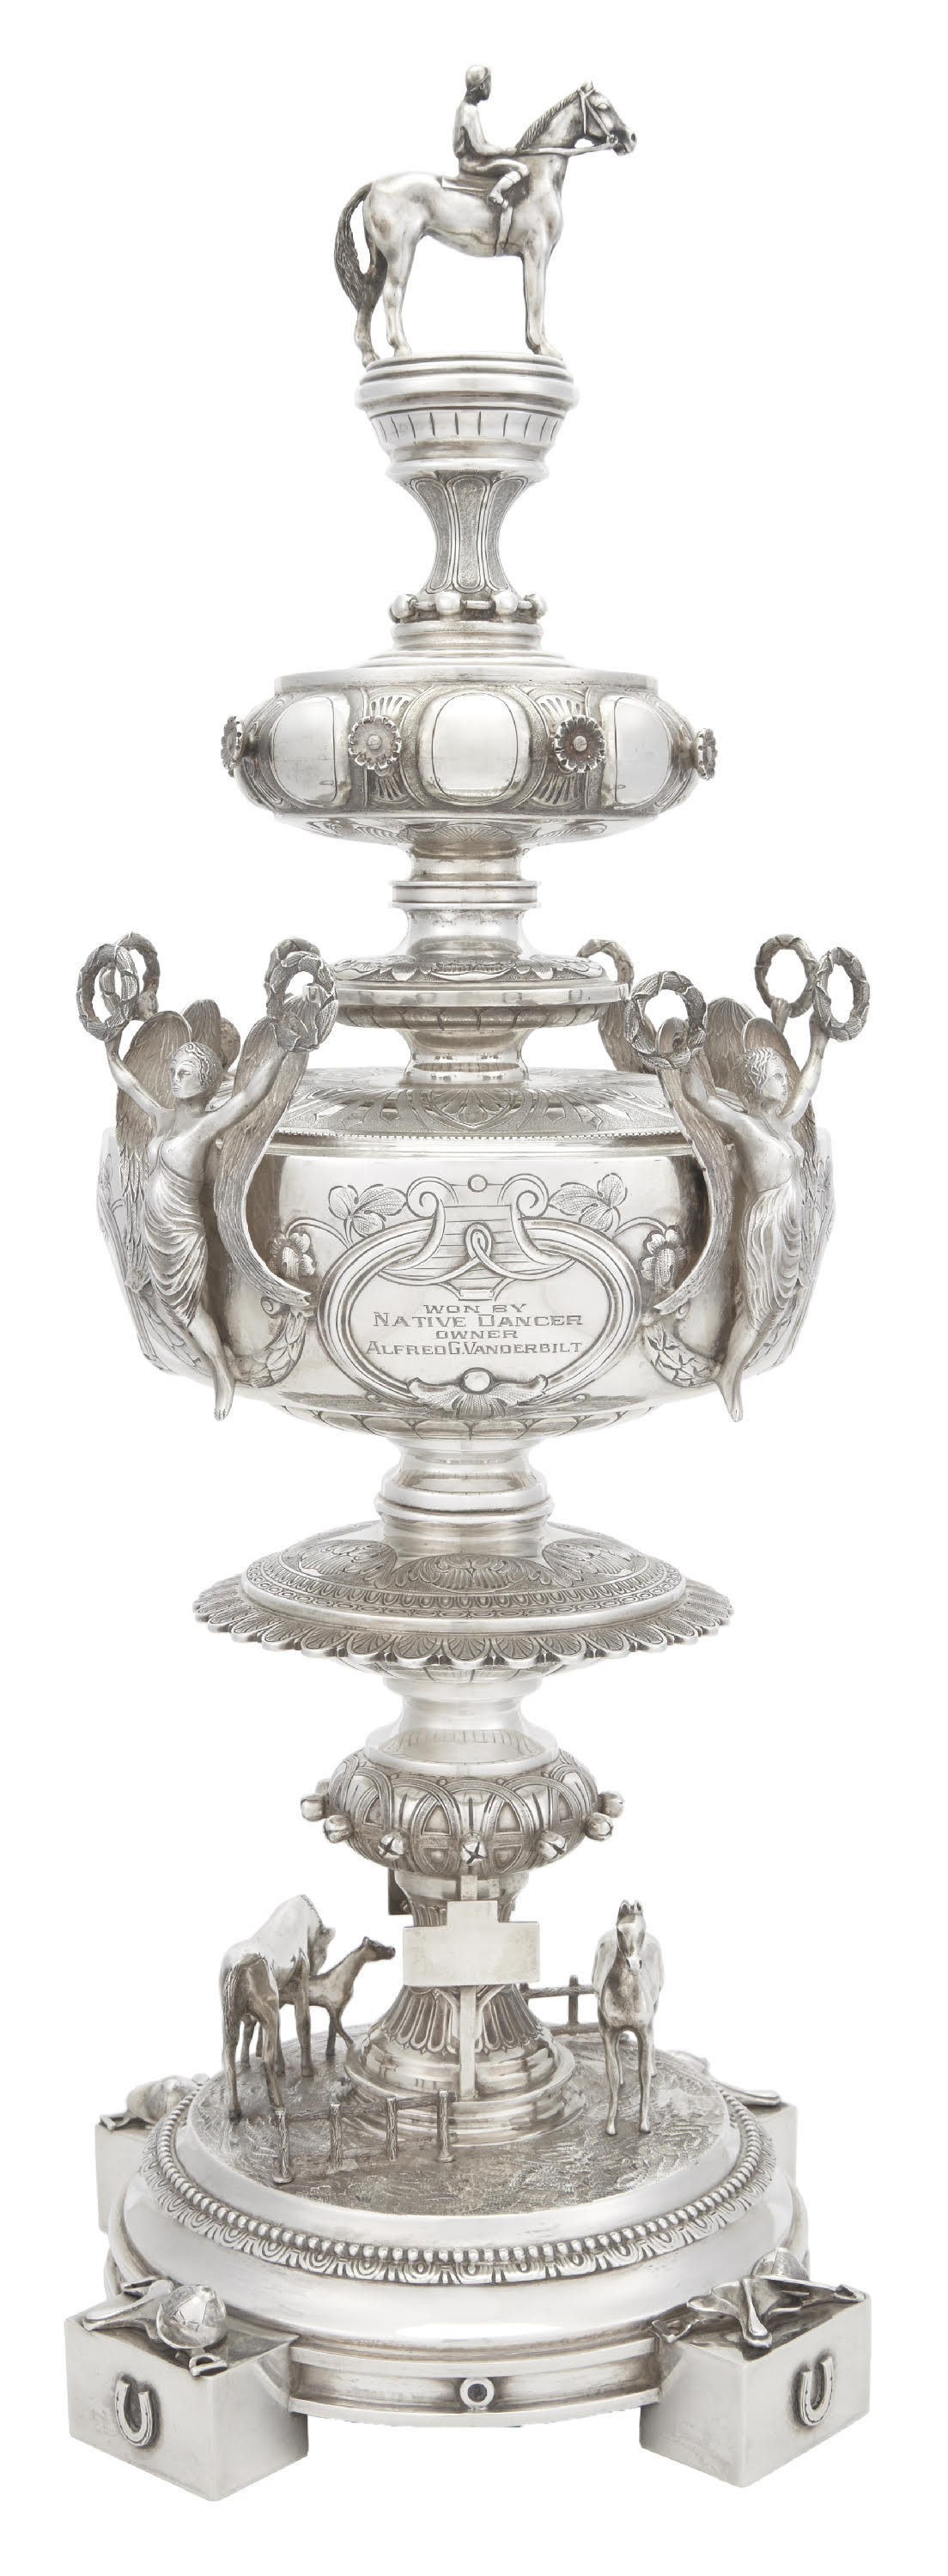 A sterling silver Preakness Trophy, won in 1953 by Alfred Gwynne Vanderbilt, Jr., owner of the thoroughbred Native Dancer. Doyle sold it in May 2018 for $100,000 against an estimate of $20,000 to $30,000, which is a world auction record for a Preakness Trophy.